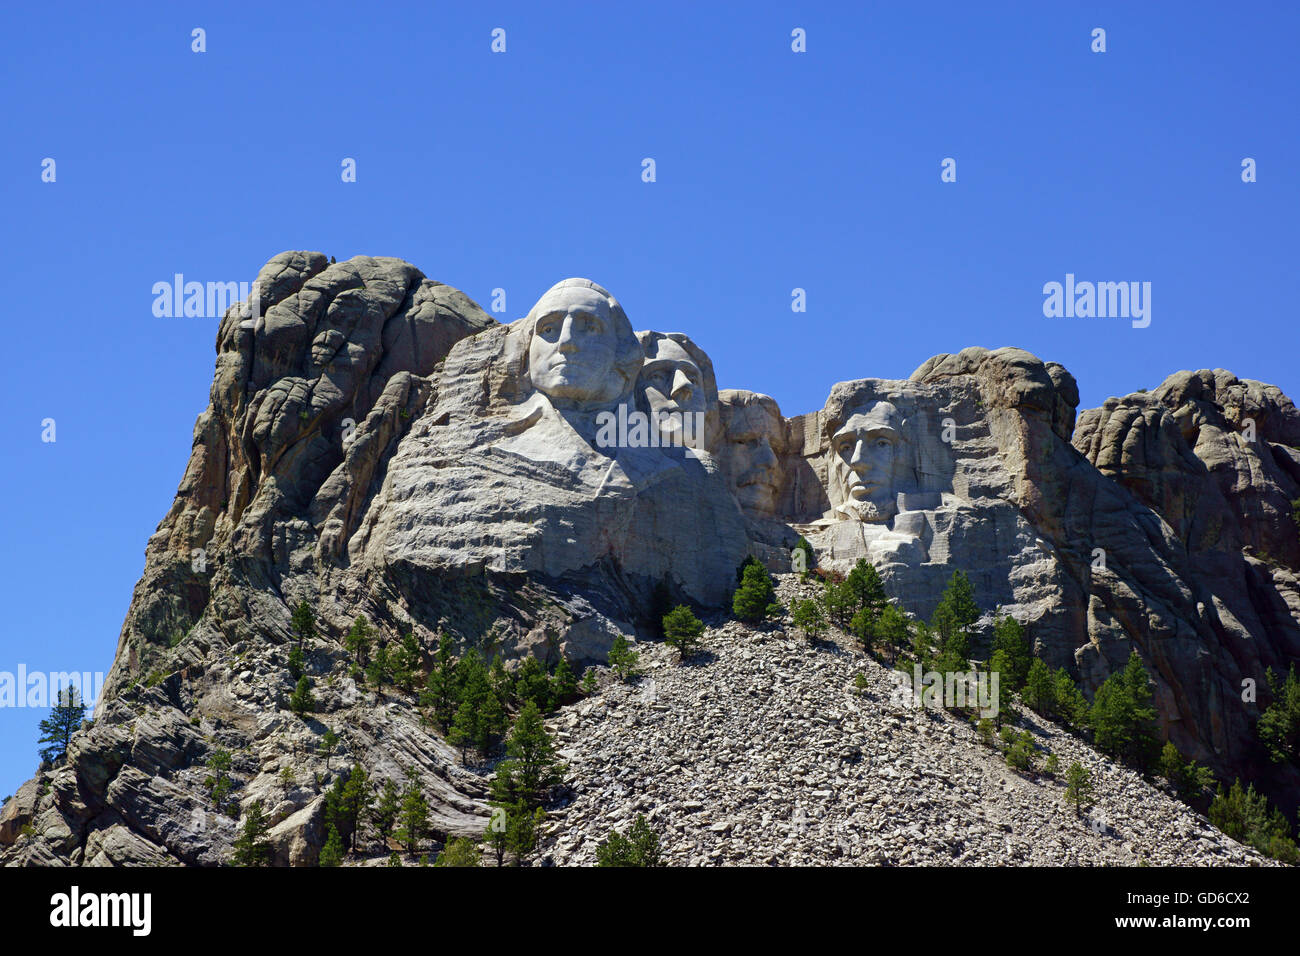 Mount Rushmore National Monument sculpt in the Black Hills of South Dakota Stock Photo